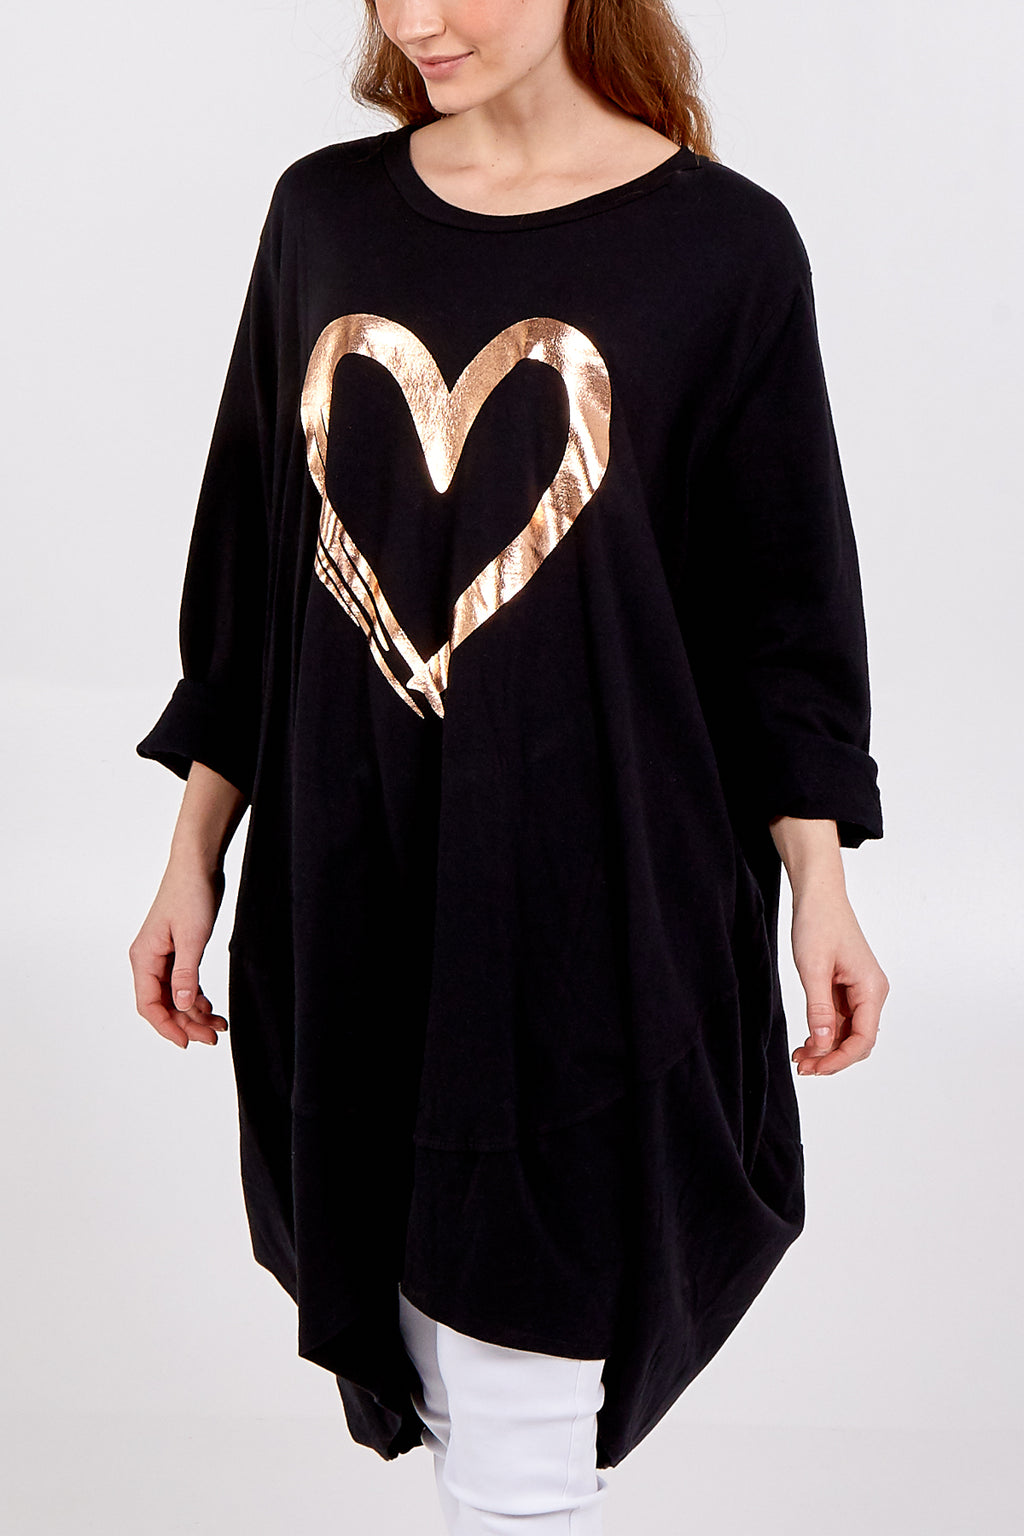 Gold Heart Asymmetrical Long Sleeve Sweatshirt